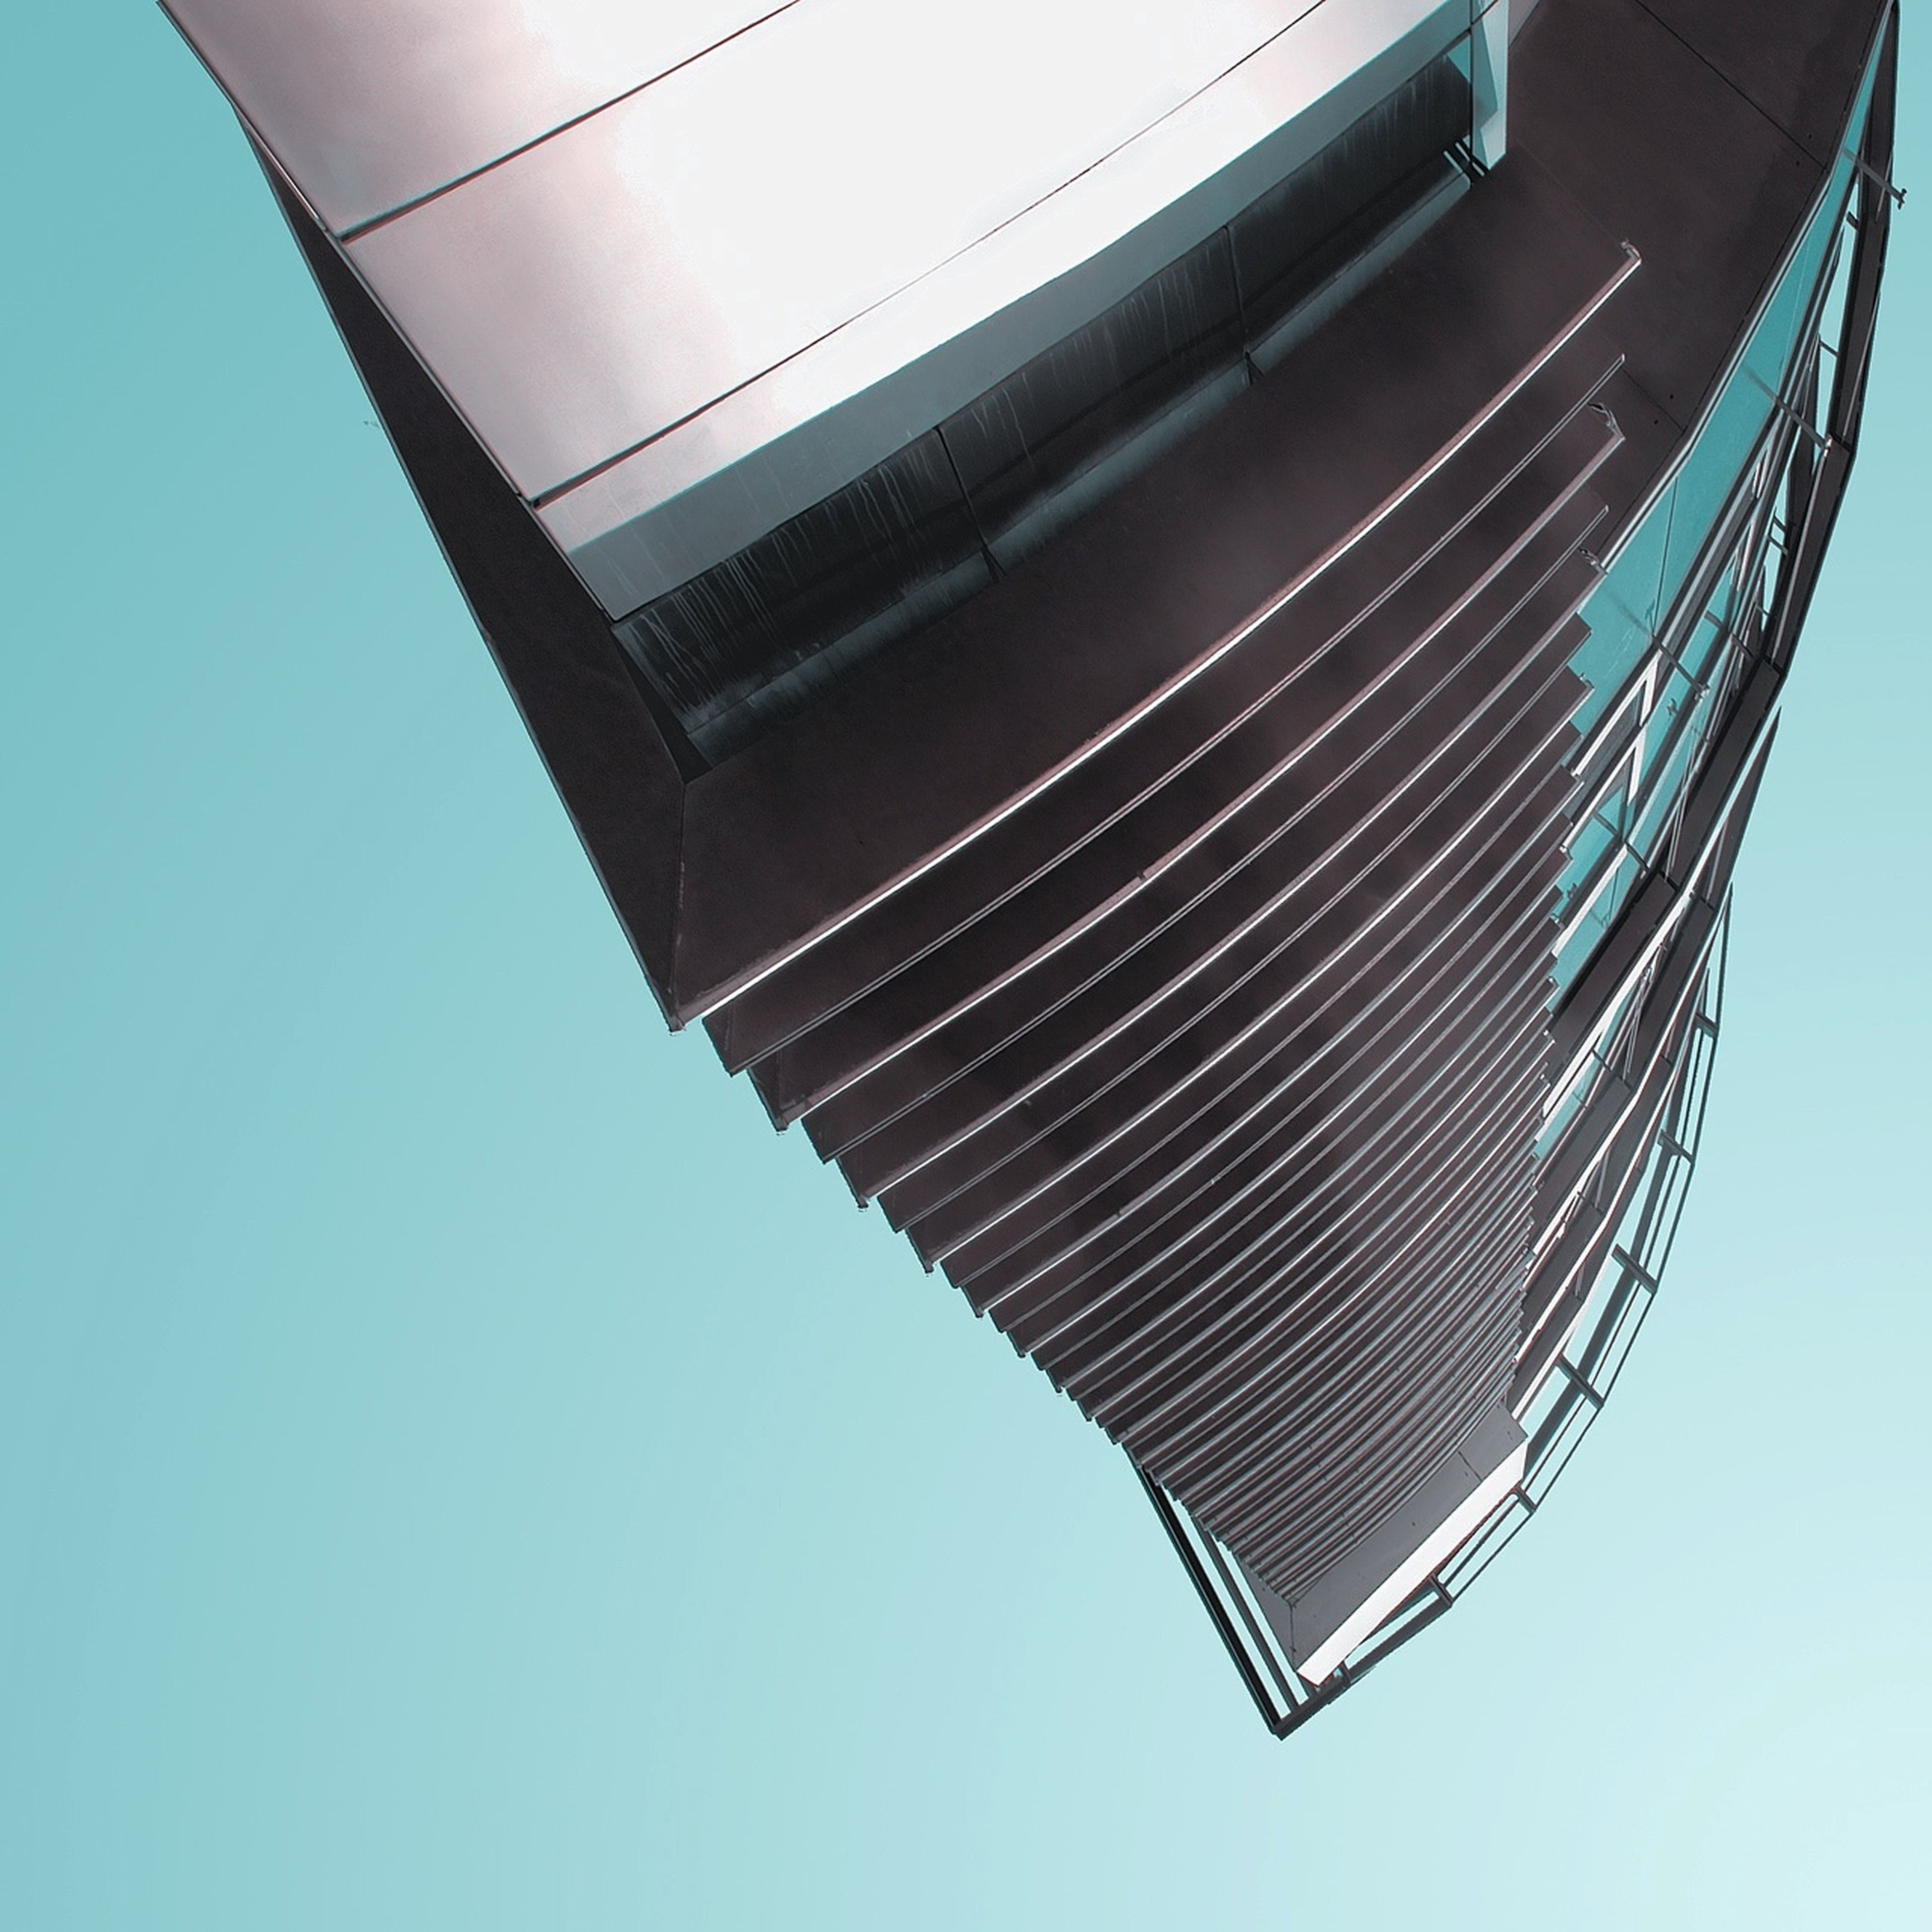 low angle view, clear sky, blue, architecture, built structure, directly below, modern, building exterior, copy space, day, pattern, no people, outdoors, part of, building, tall - high, geometric shape, office building, sky, metal